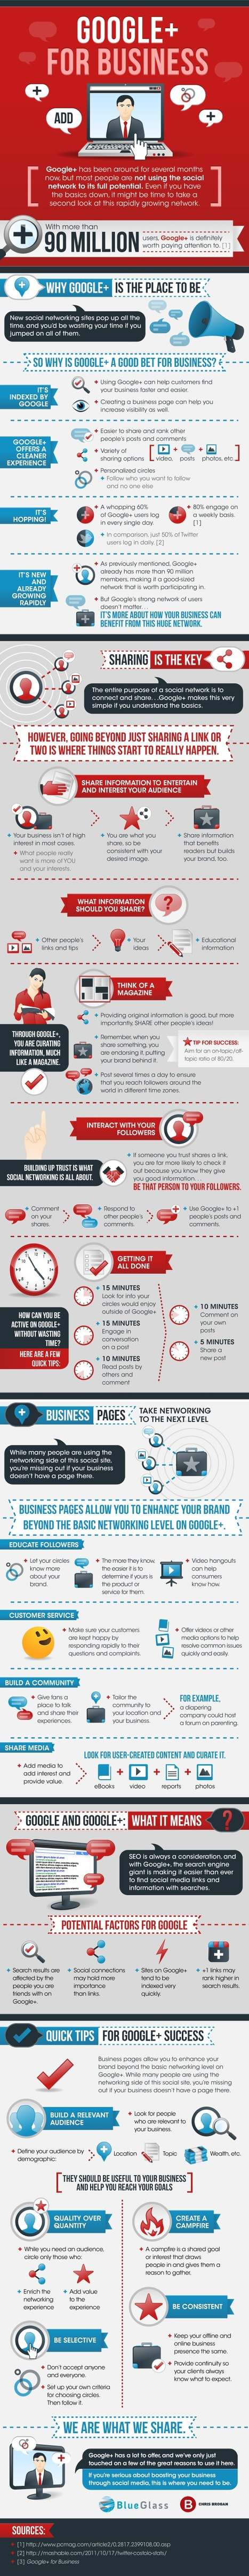 Infographic: How to Use Google+ for Social Media Marketing | Mobile Marketing Watch | Integrated Brand Communications | Scoop.it